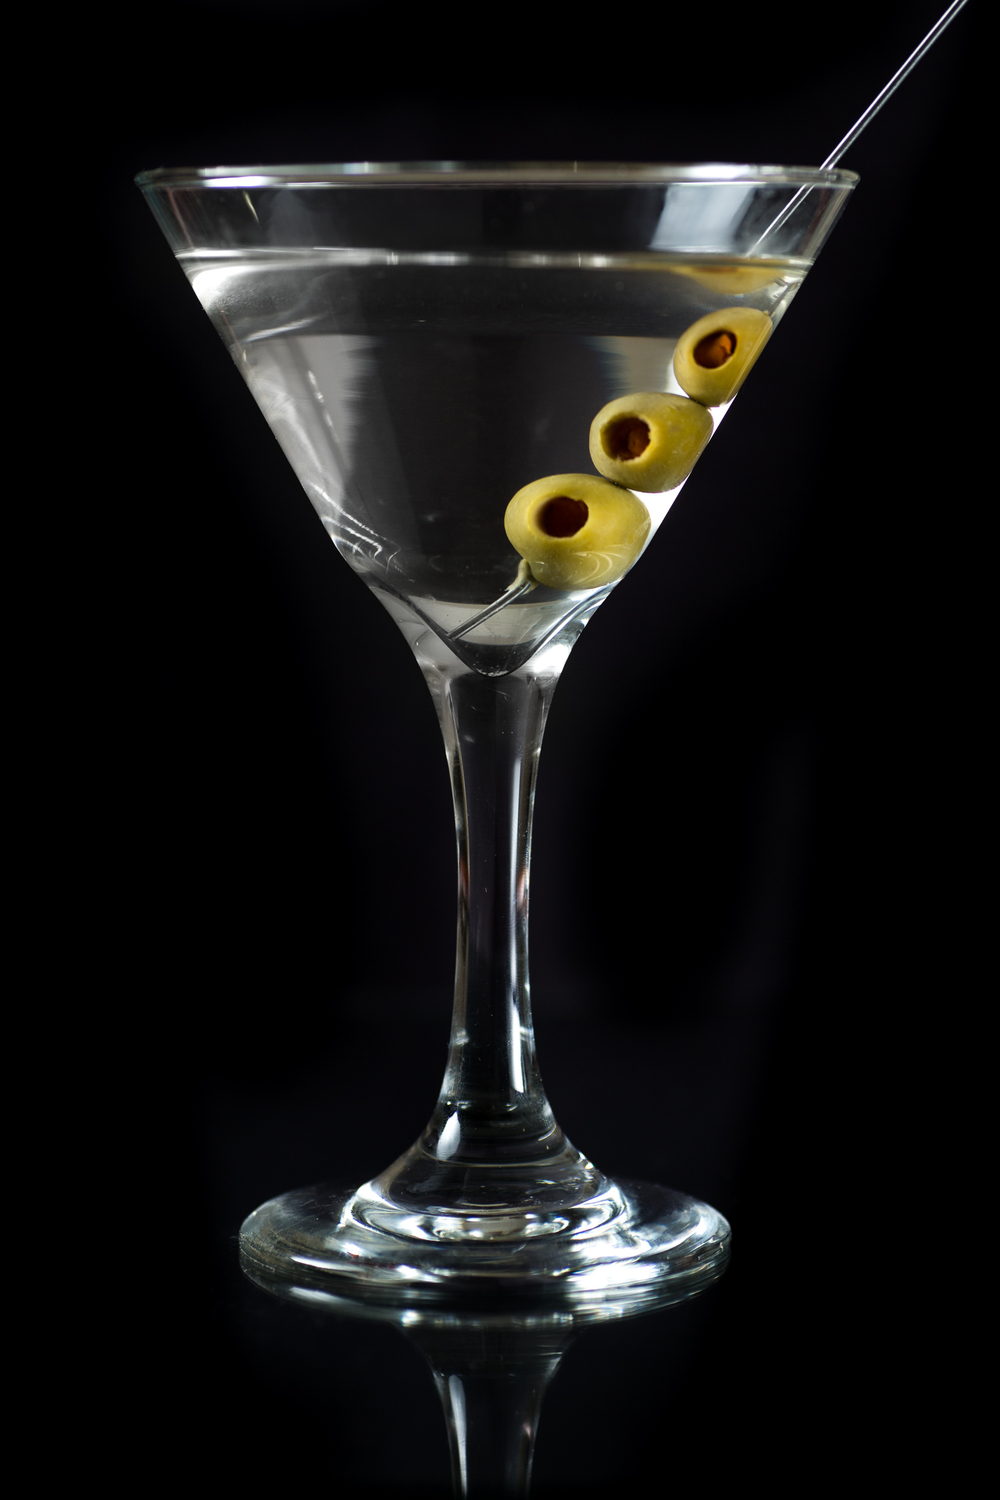 Kansas City Food Photographer - Martini - Cocktails - Restaurant Lifestyle Photography - Studio Food Photographywww.anthem-photo.com-01.jpg